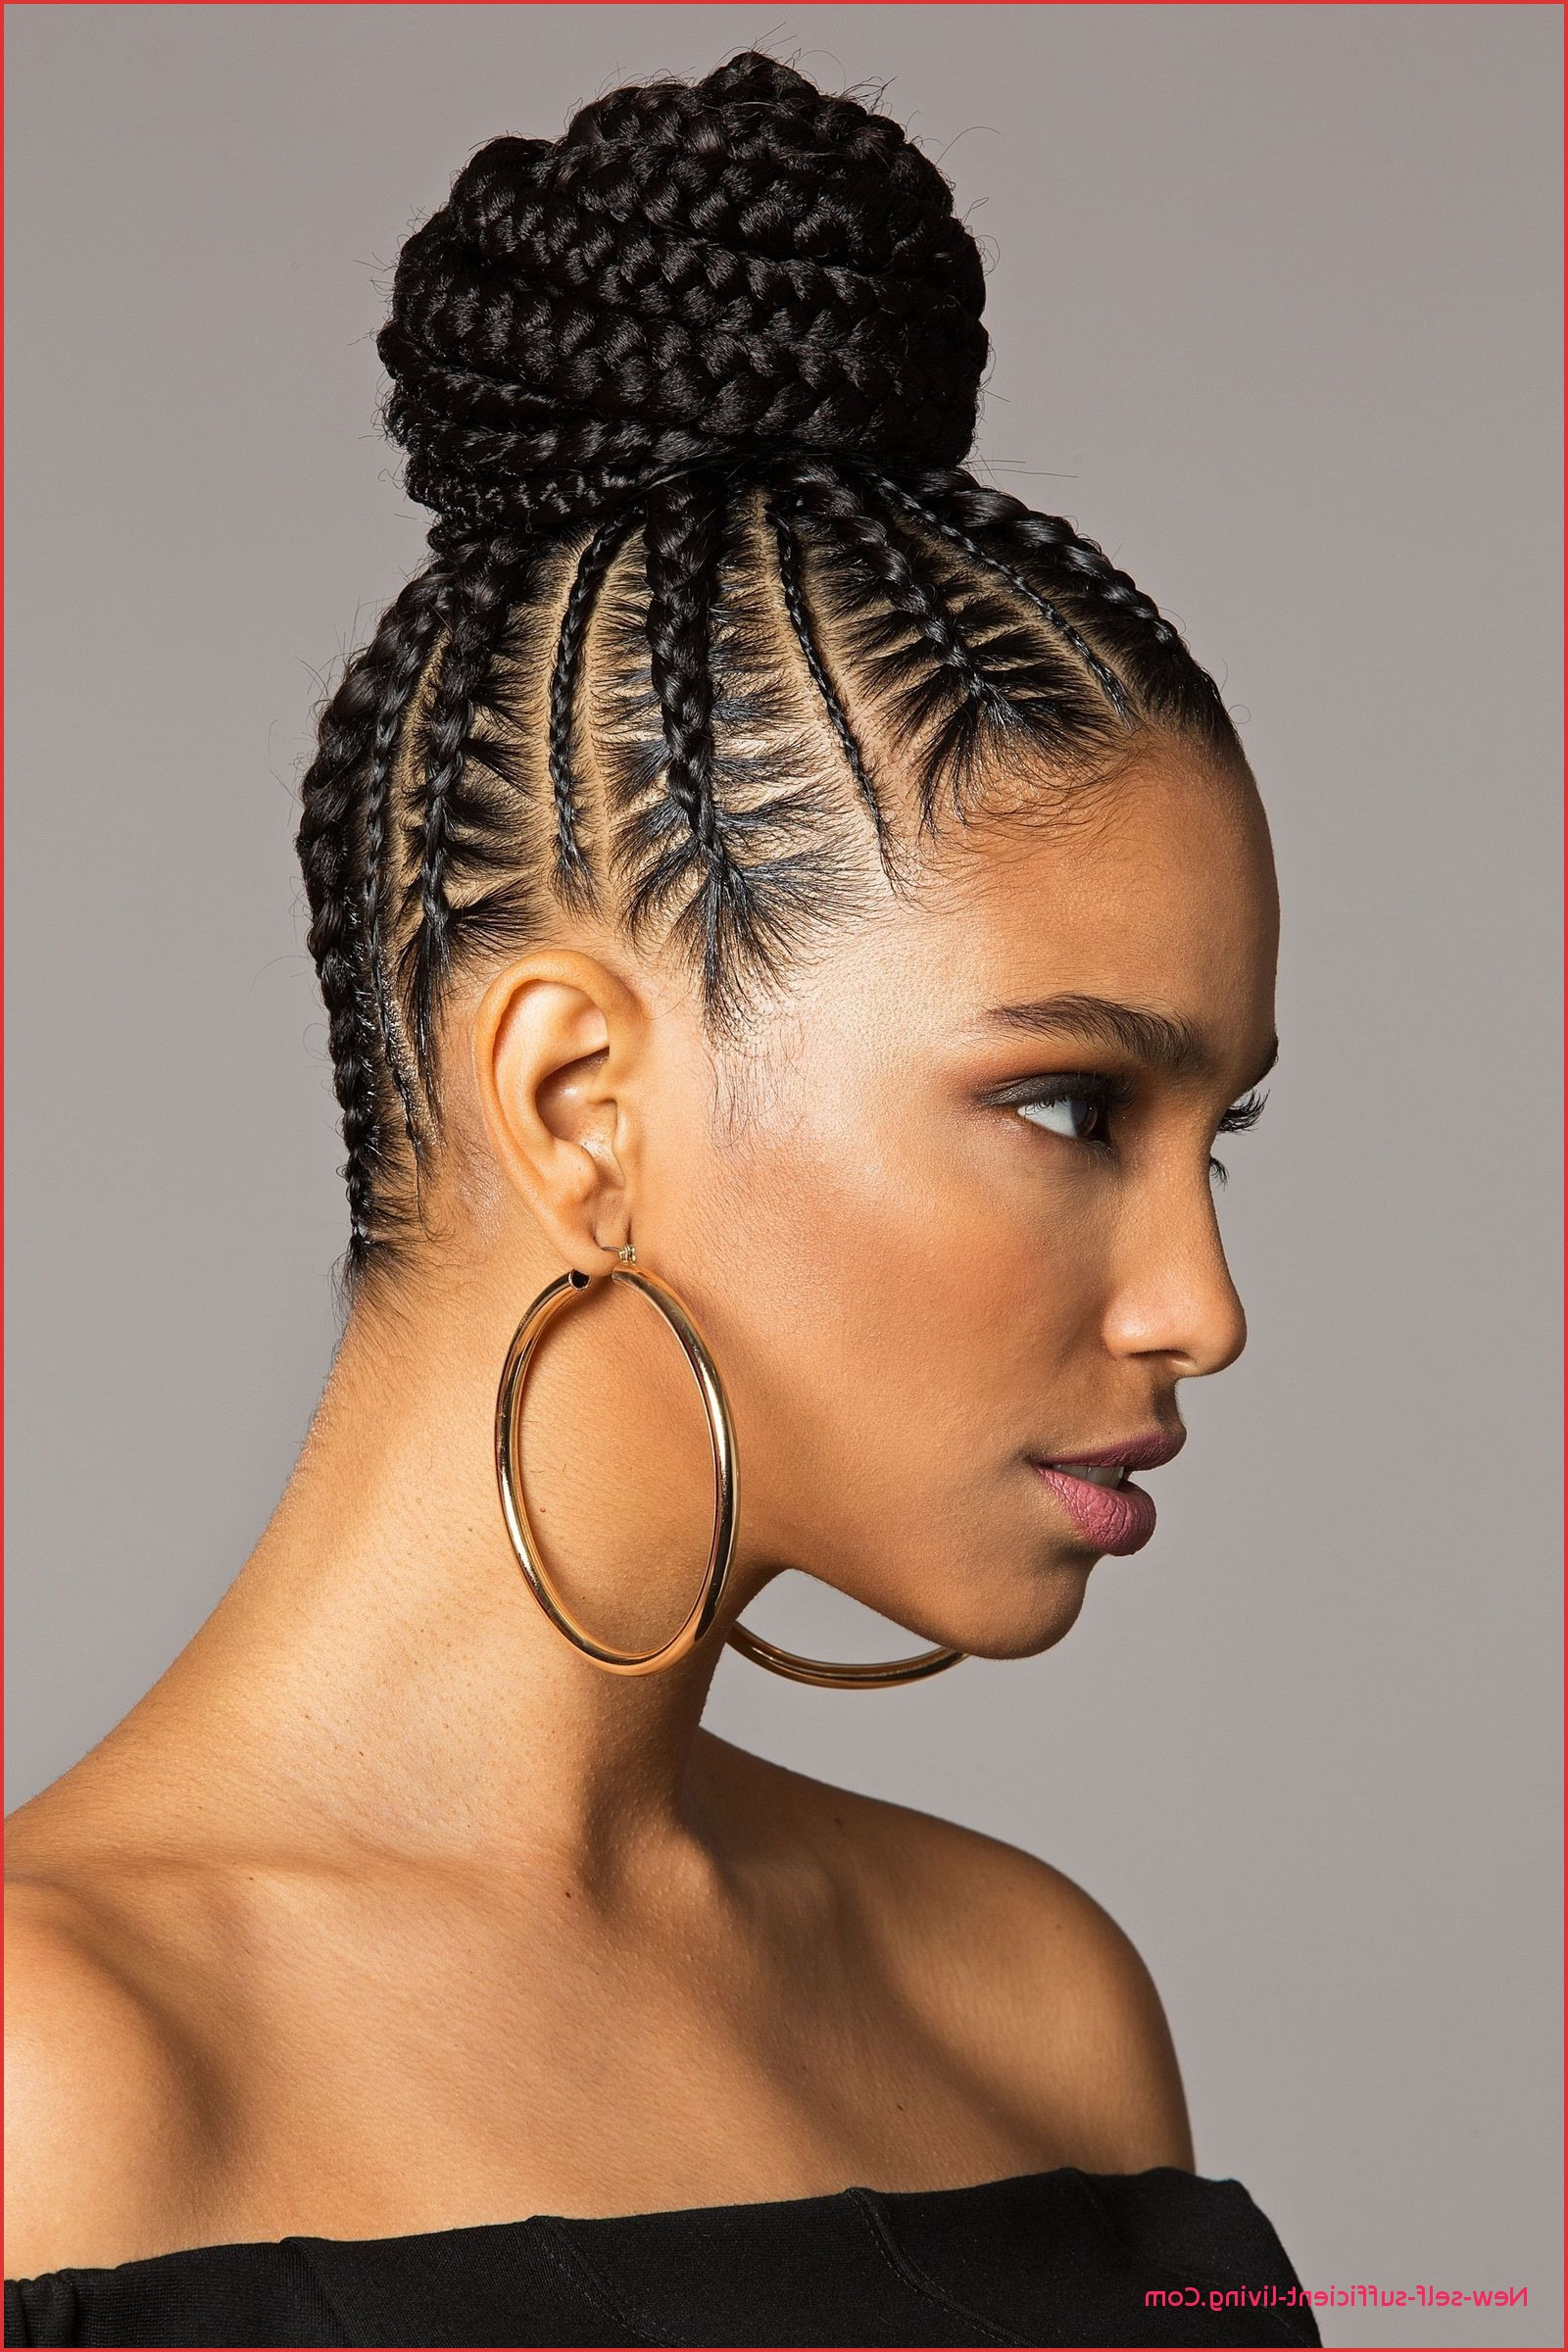 Hairstyles : Chignon Updo Hairstyles Adorable Braided Bun In Fashionable Bob Braid Hairstyles With A Bun (View 7 of 20)